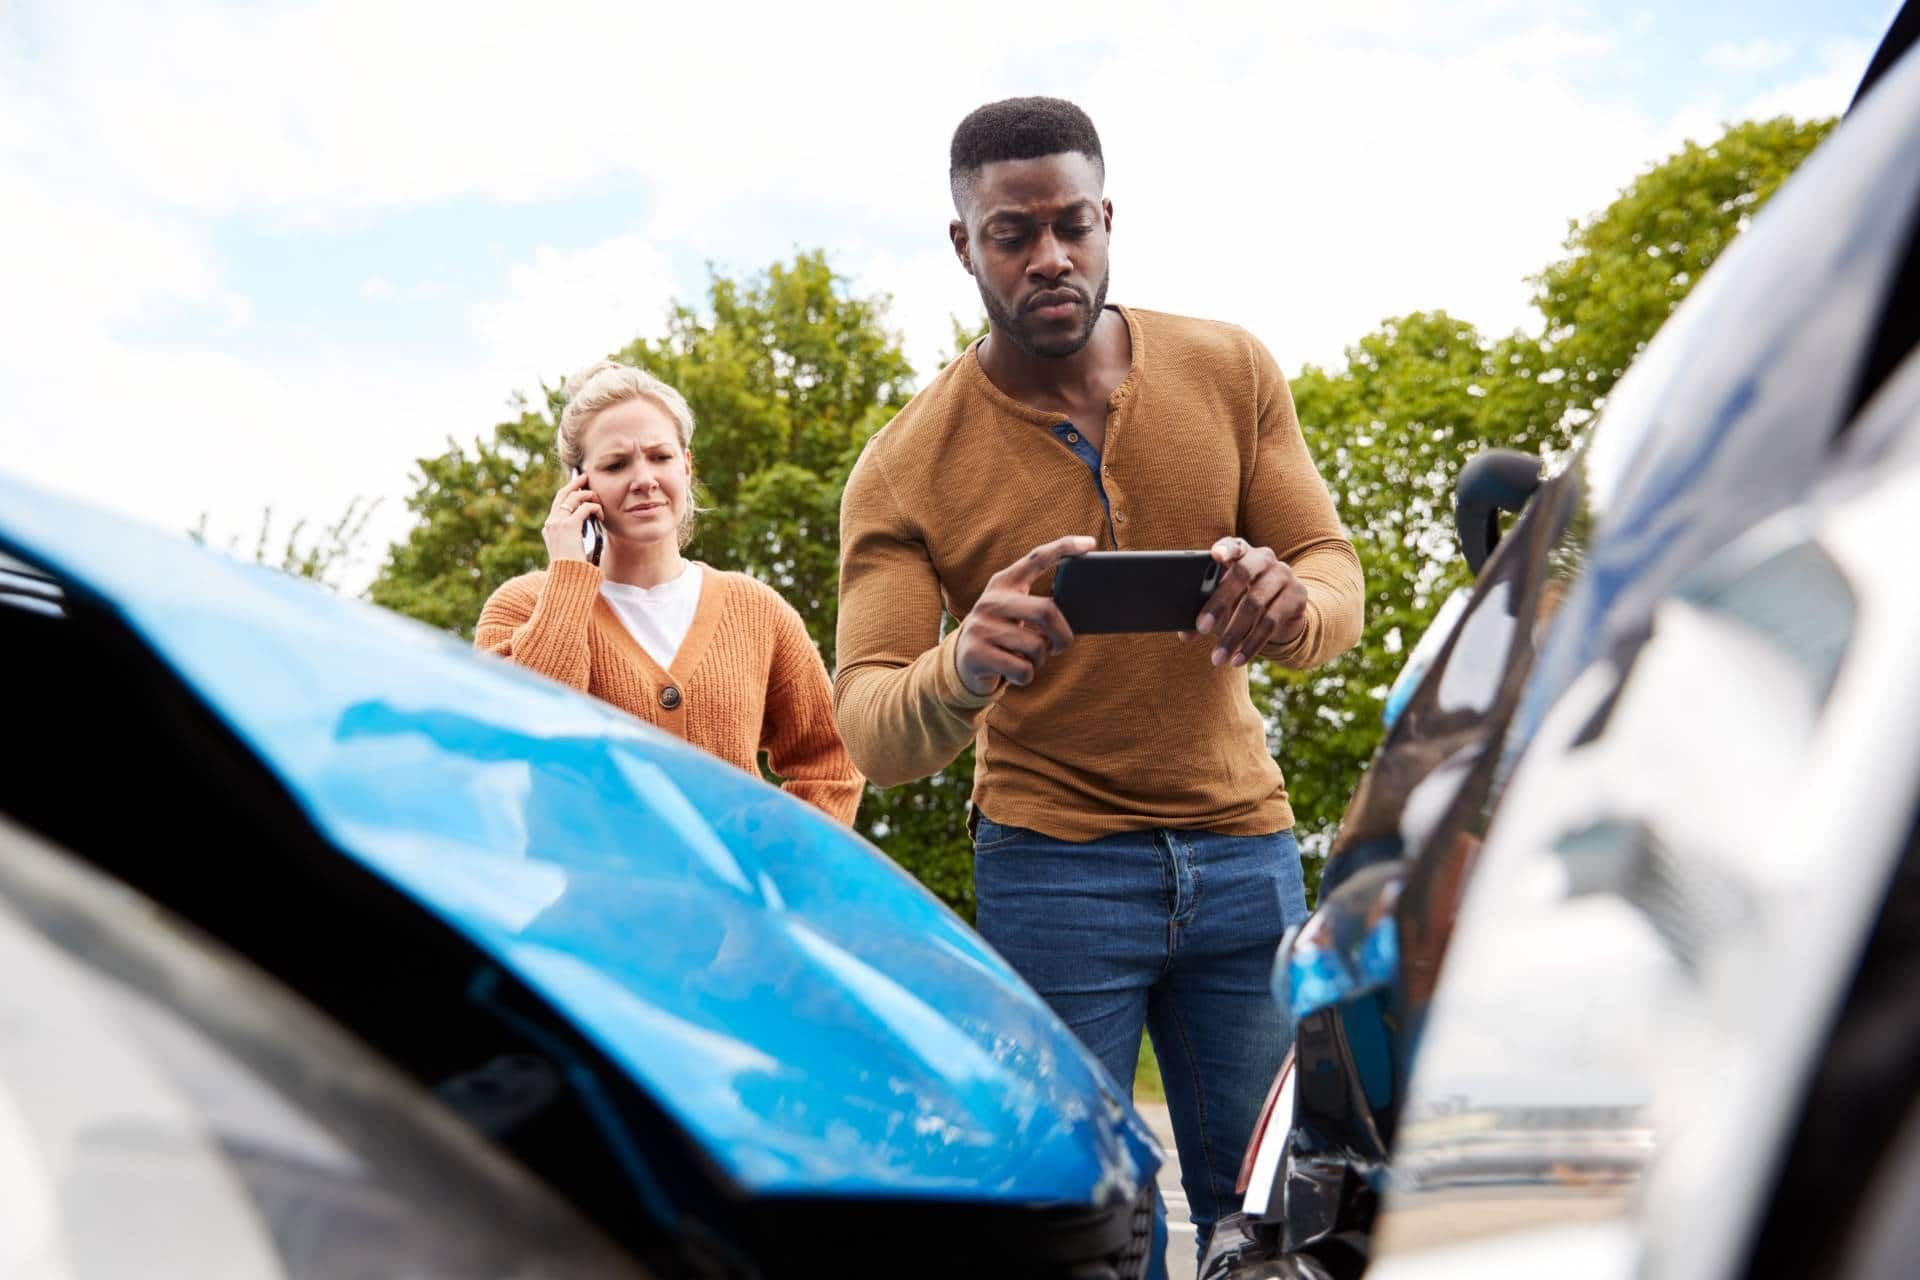 You need a qualified personal injury lawyer to fight for your compensation following an auto accident.